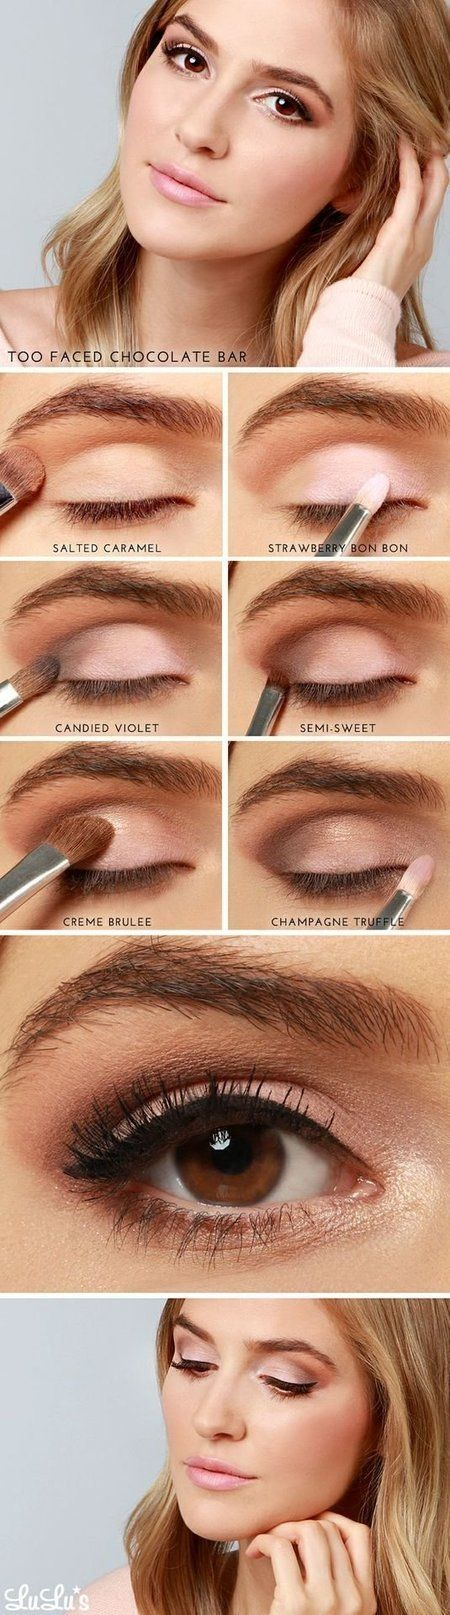 Hochzeit ♡ Wedding ♡ Trauzeugin ♡ Bridesmaid ♡ Make Up ♡ Augen ♡ Eye… – Frisuren Damen